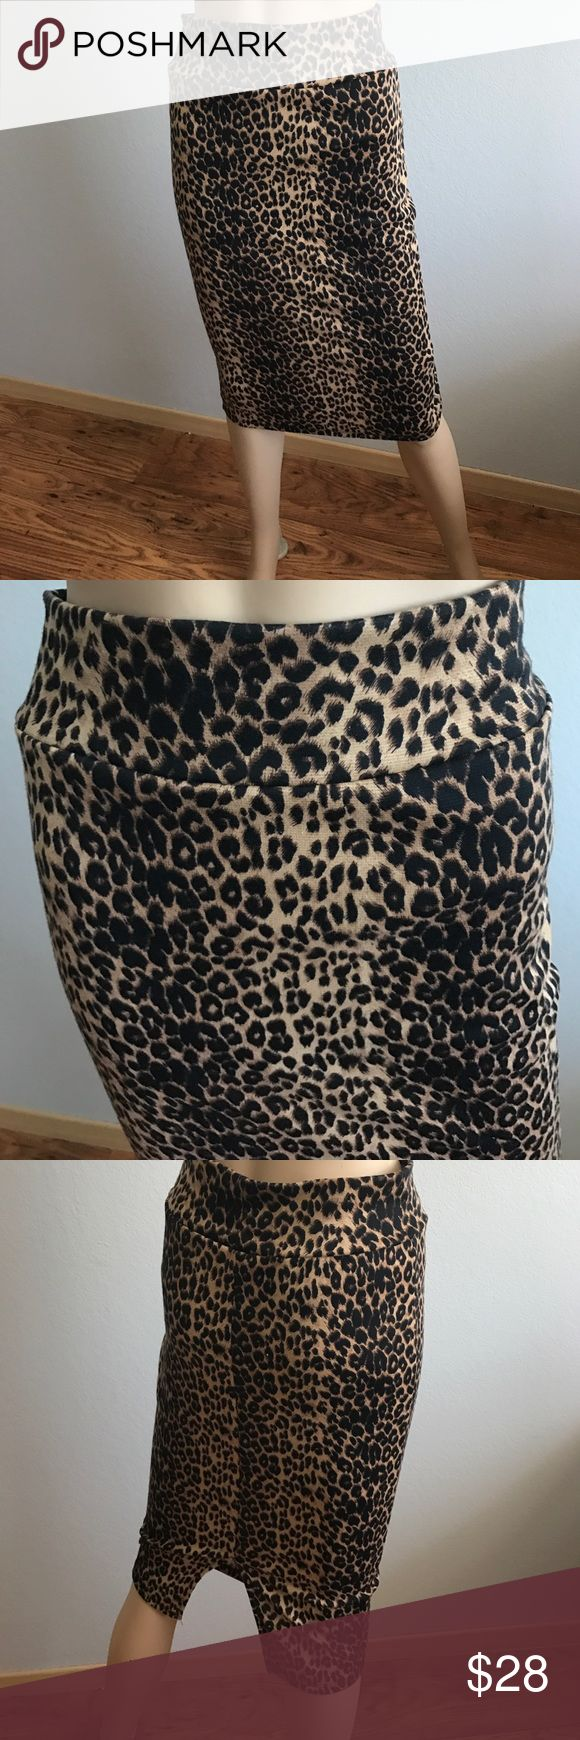 "Leopard Pencil Skirt Size L 27"" long, pencil skirt, very sexy✨size L✨27"" long scobe Skirts Pencil"